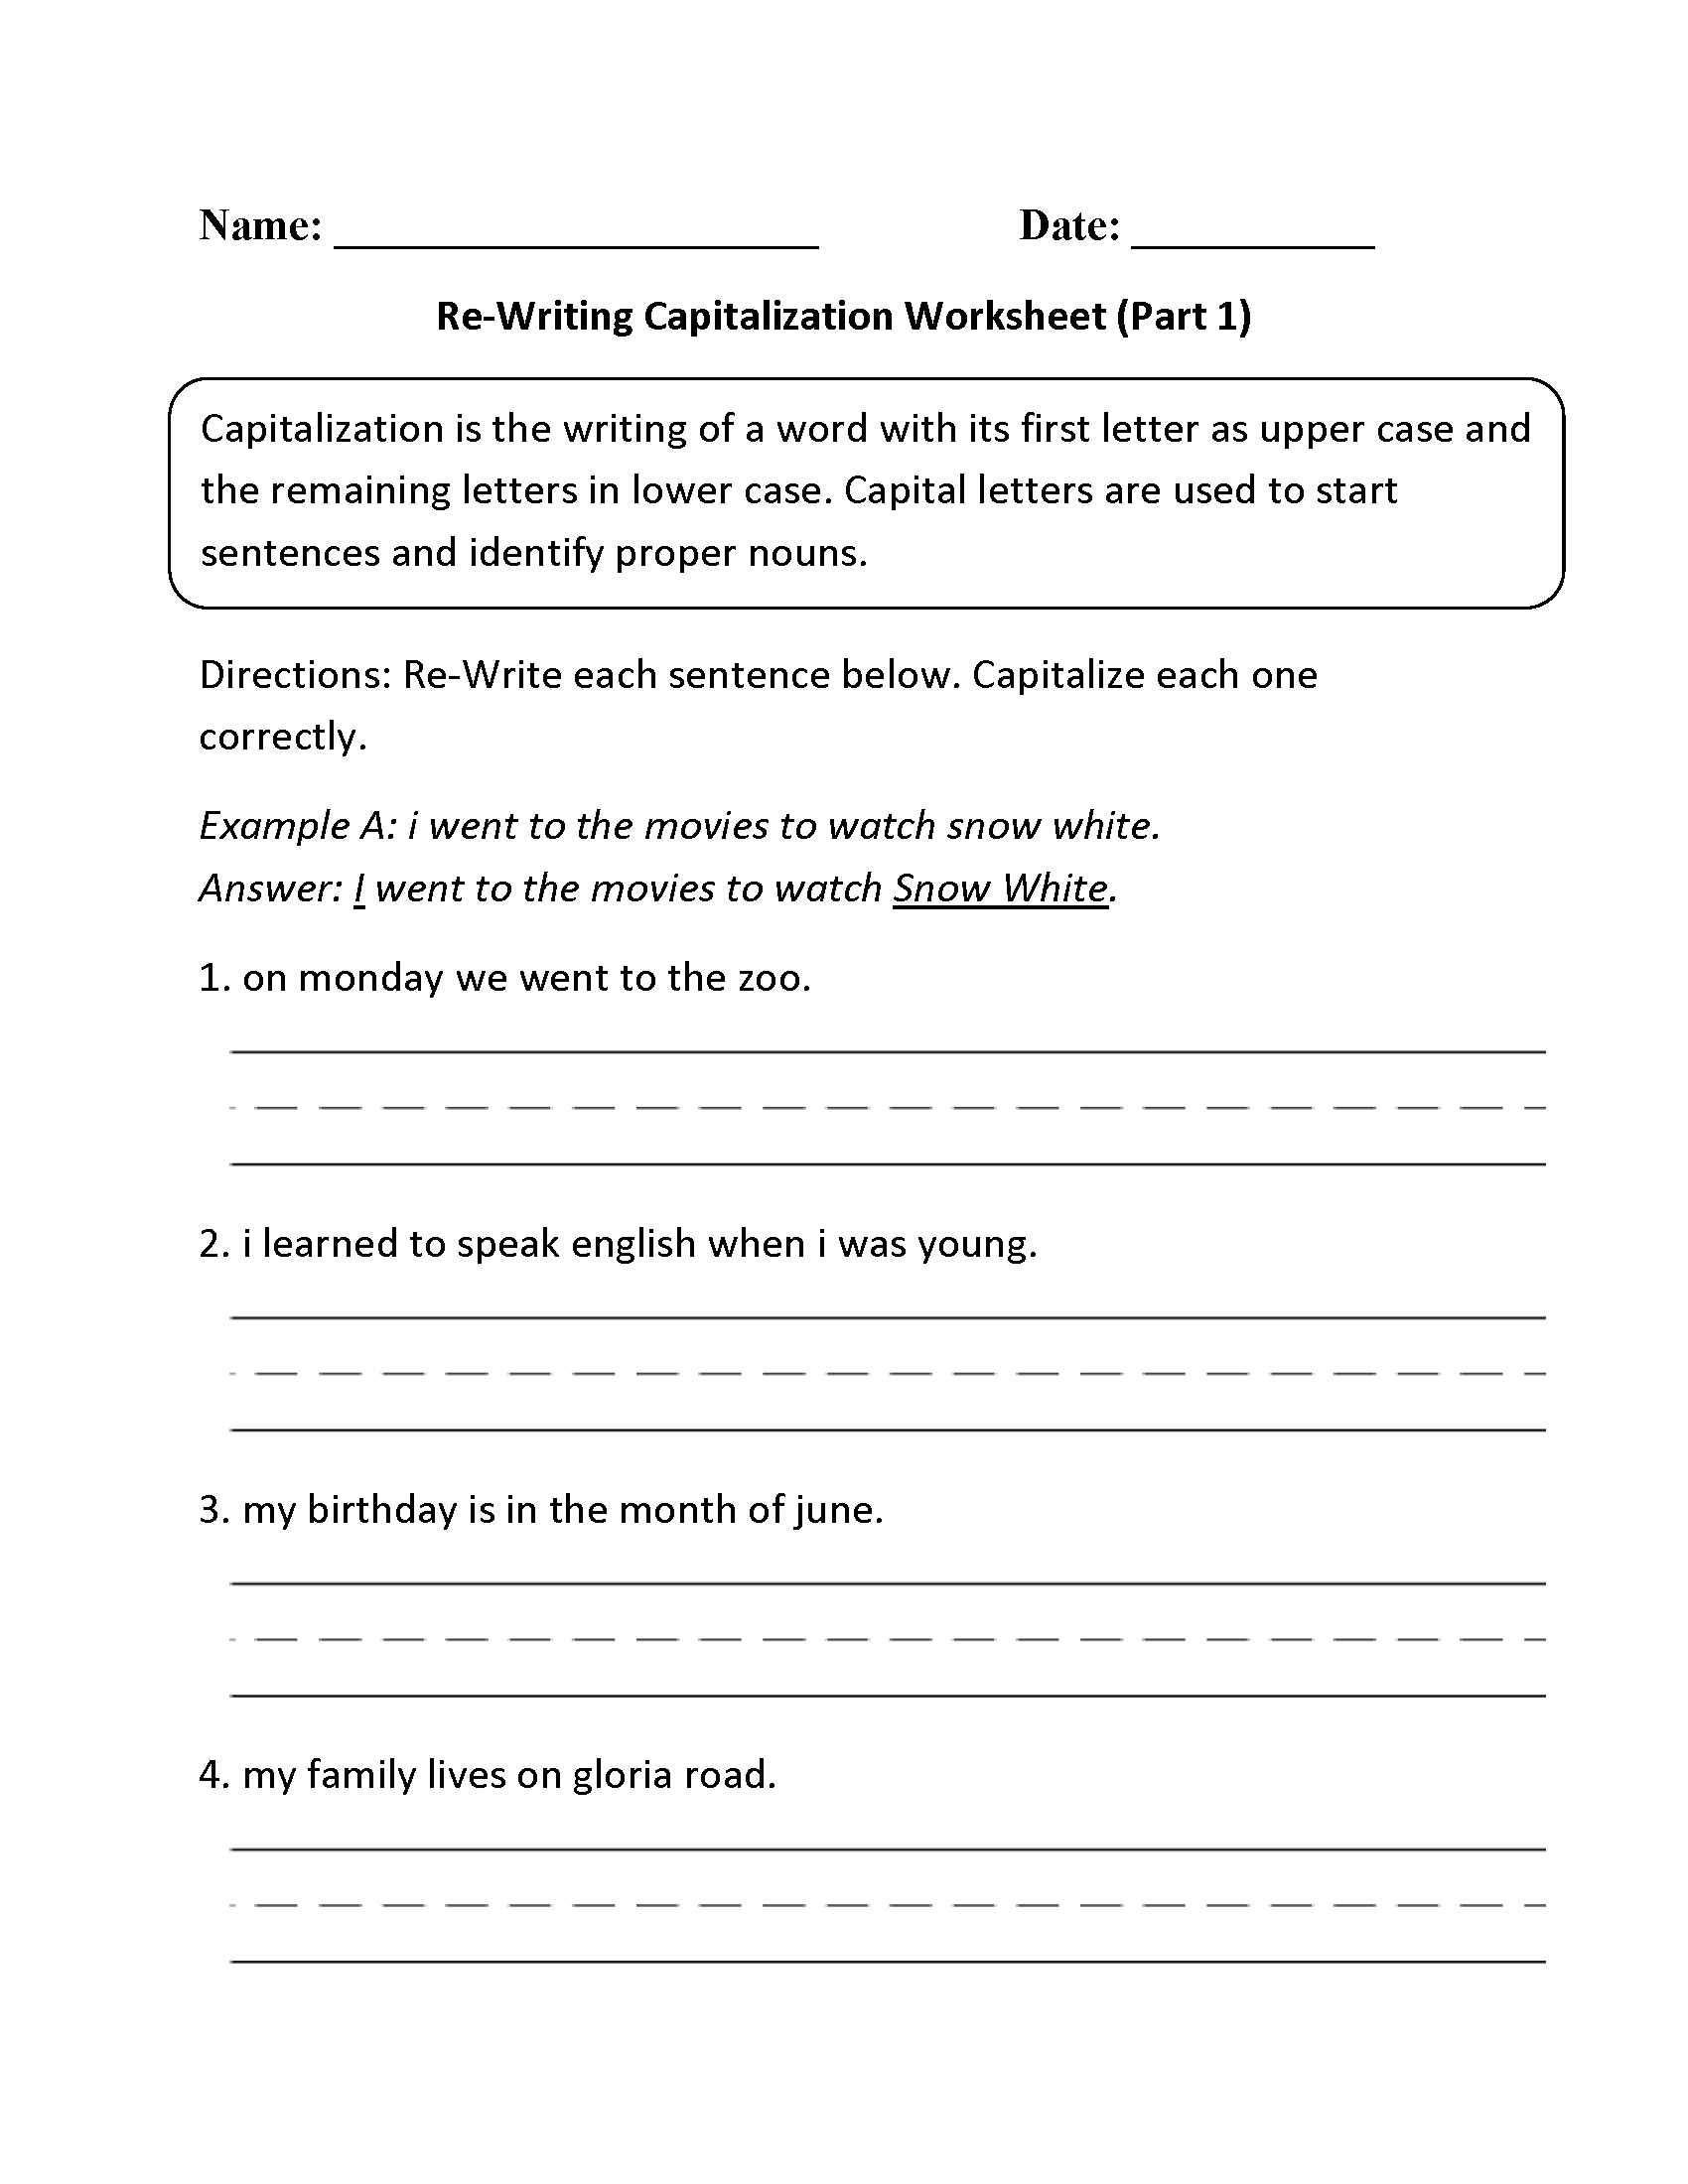 Worksheets Free Capitalization And Punctuation Worksheets englishlinx com capitalization worksheets re writing worksheet part 1